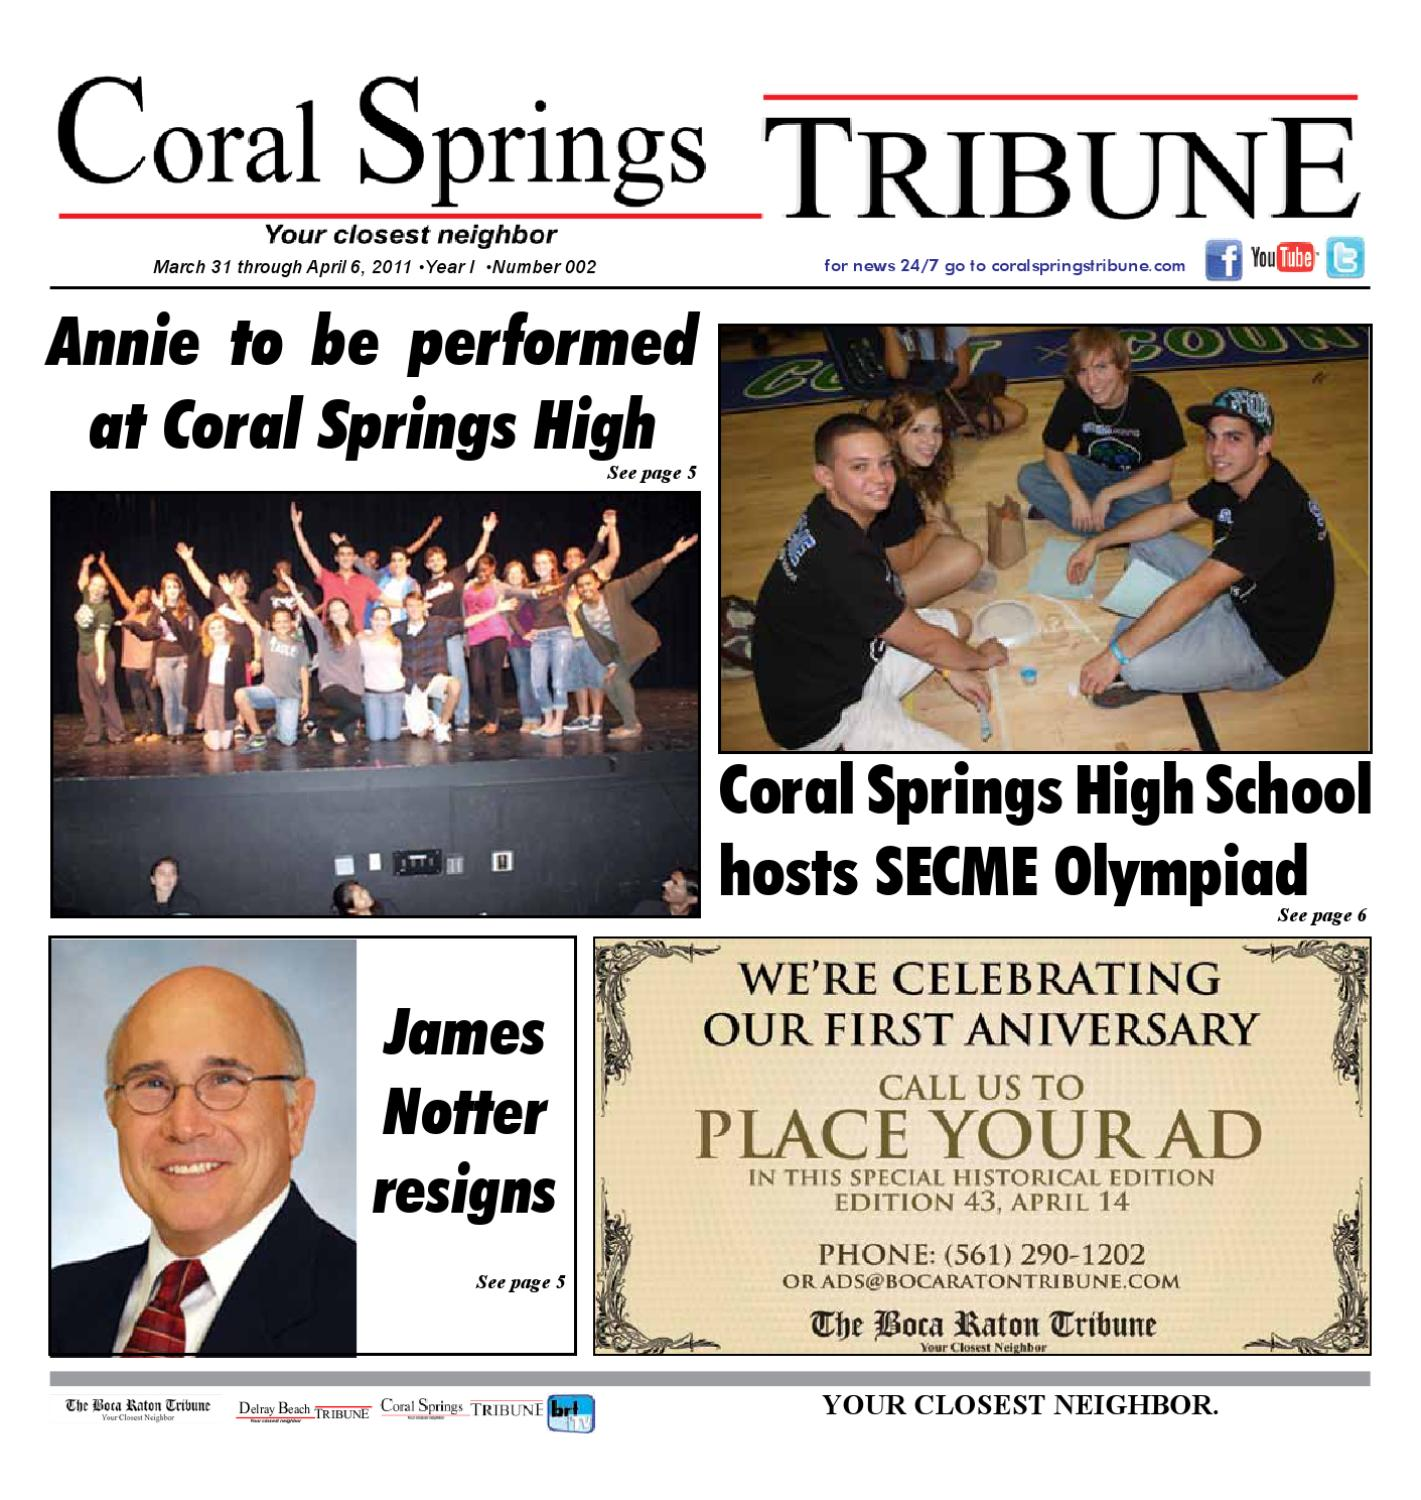 The Comic News Editorial Cartoon By Paul Conrad Tribune: The Coral Springs Tribune Ed 2 By Coral Springs Tribune